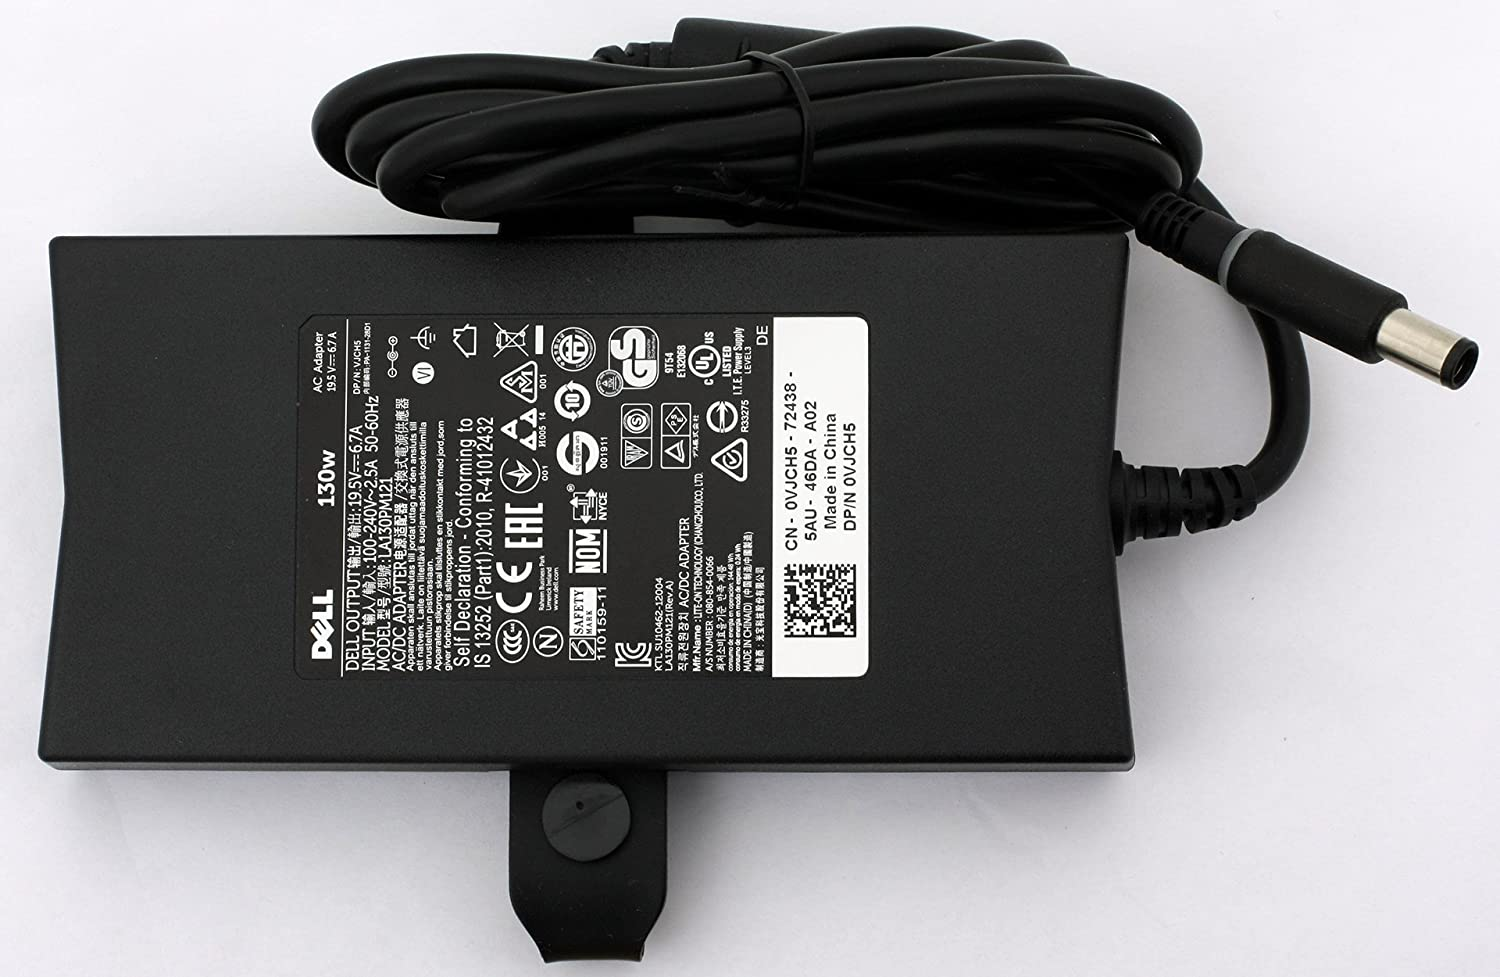 Amazon.com: Dell 130-Watt 3-Prong AC Adapter with 6 ft Power Cord ...